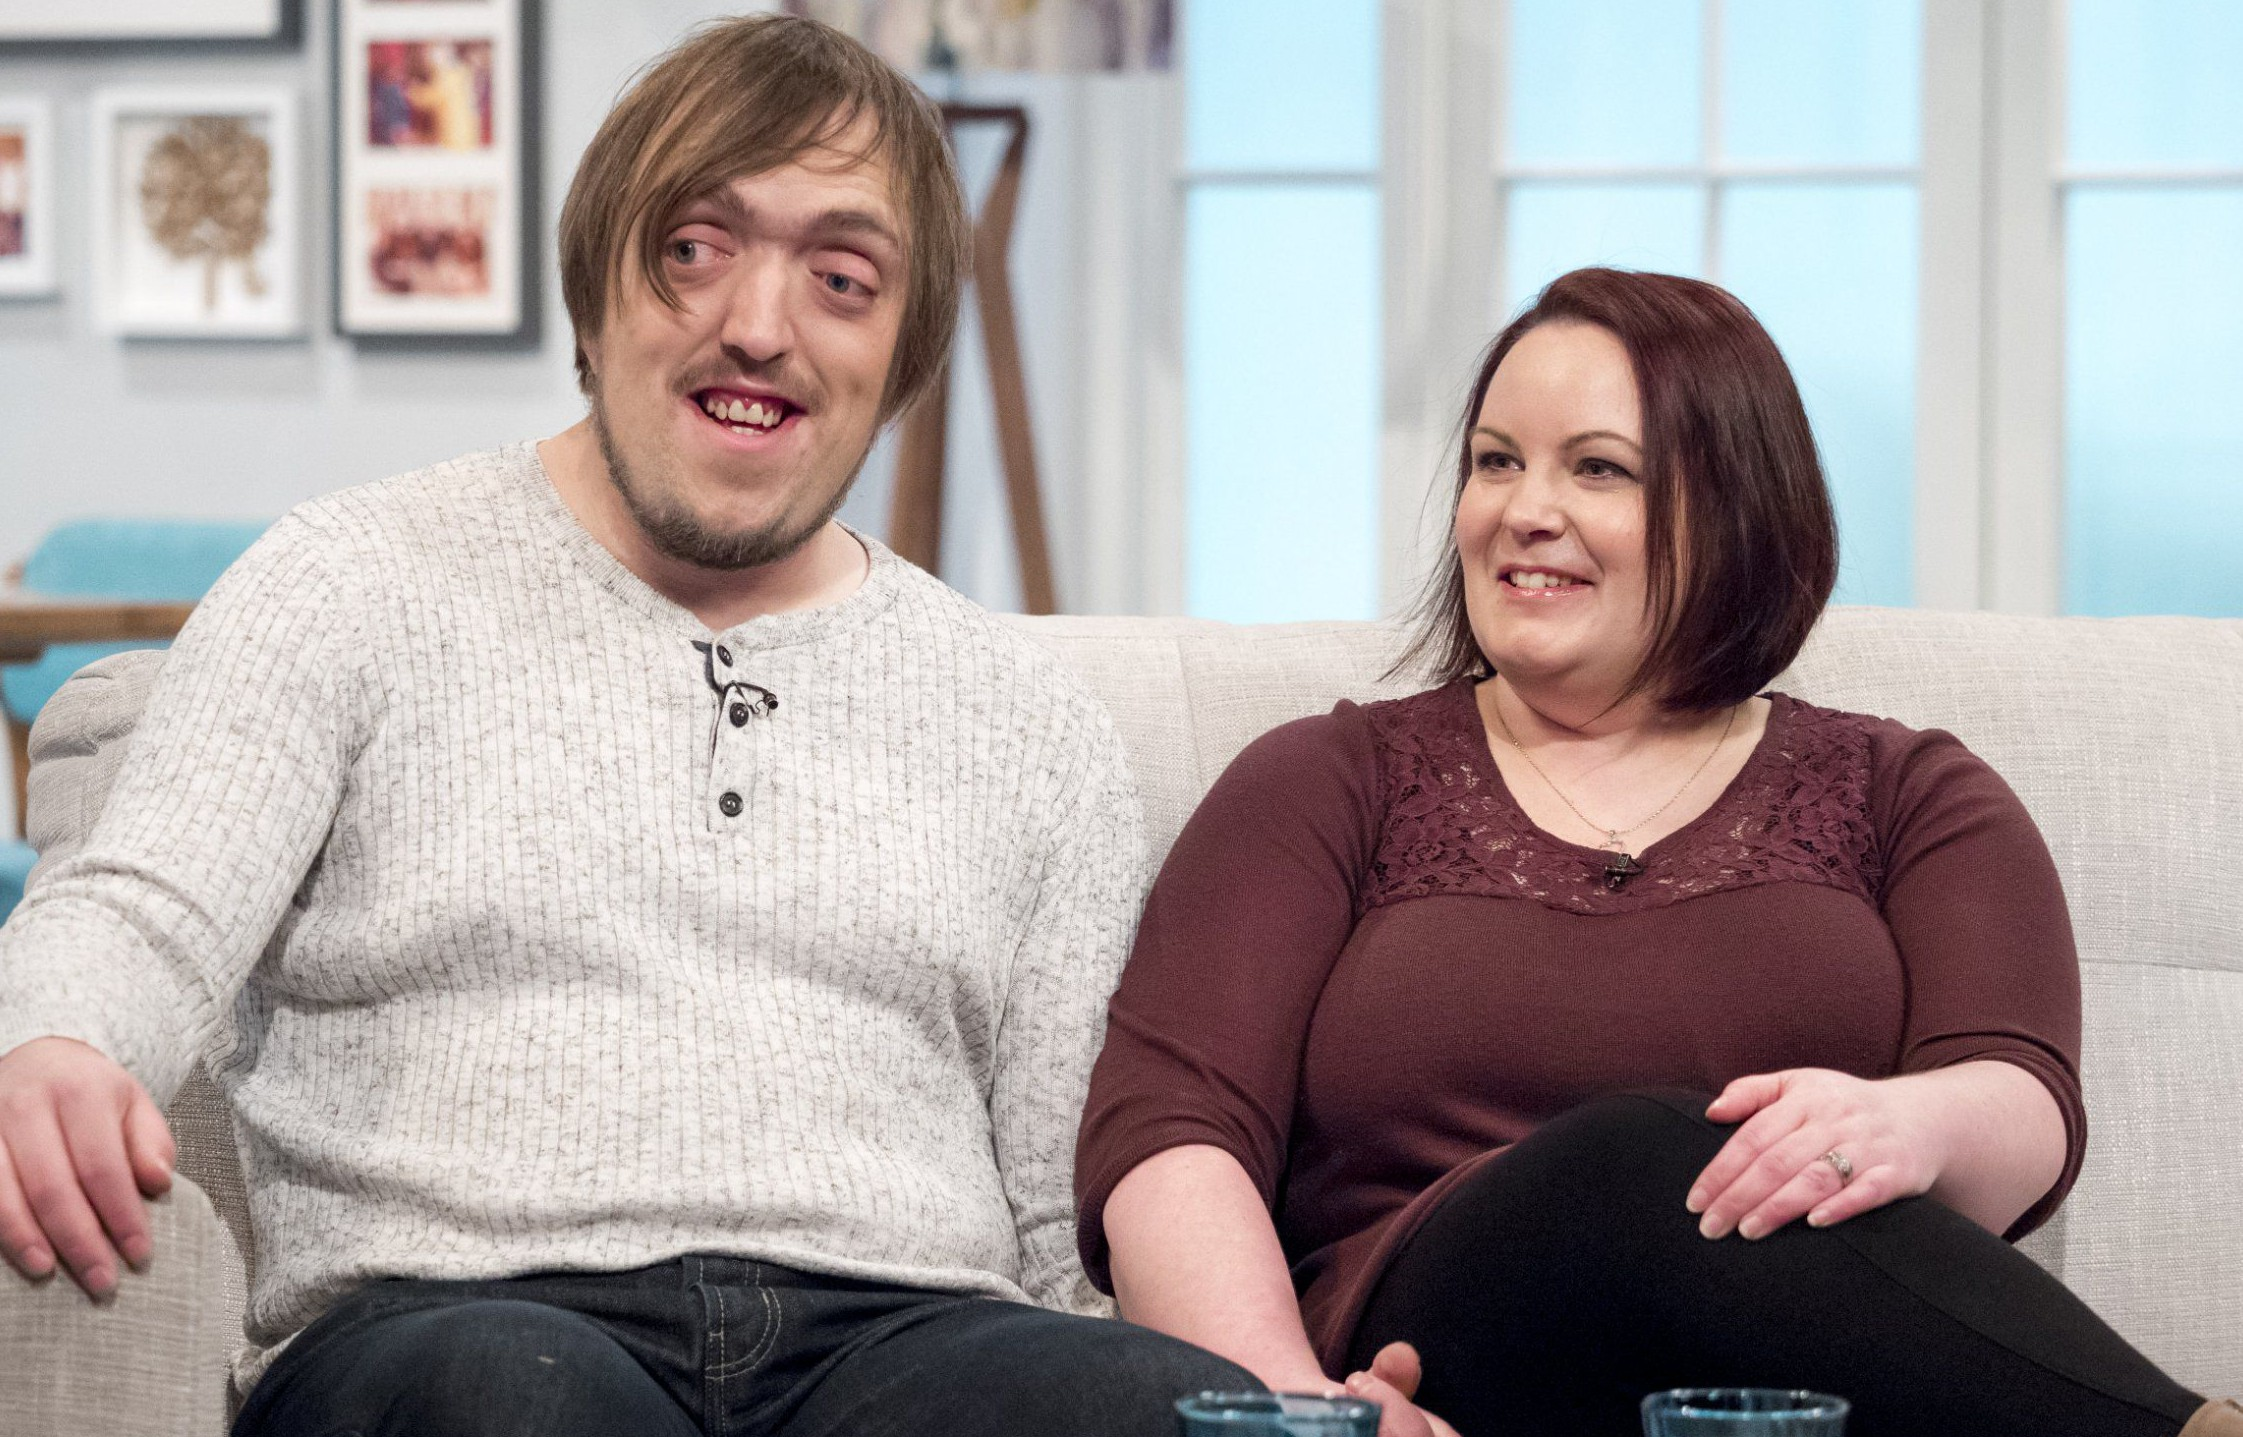 EDITORIAL USE ONLY. NO MERCHANDISING Mandatory Credit: Photo by Ken McKay/ITV/REX/Shutterstock (5579487af) Steve Carruthers and Vicky Carruthers 'Lorraine' TV show, London, Britain - 01 Feb 2016 Steve and Vicky Carruthers join Lorraine to talk about meeting t, Steve was born with a rare genetic condition called Crouzon synd, getting married last summer and their plans to start a family th, which affects the shape of the head and facial features.